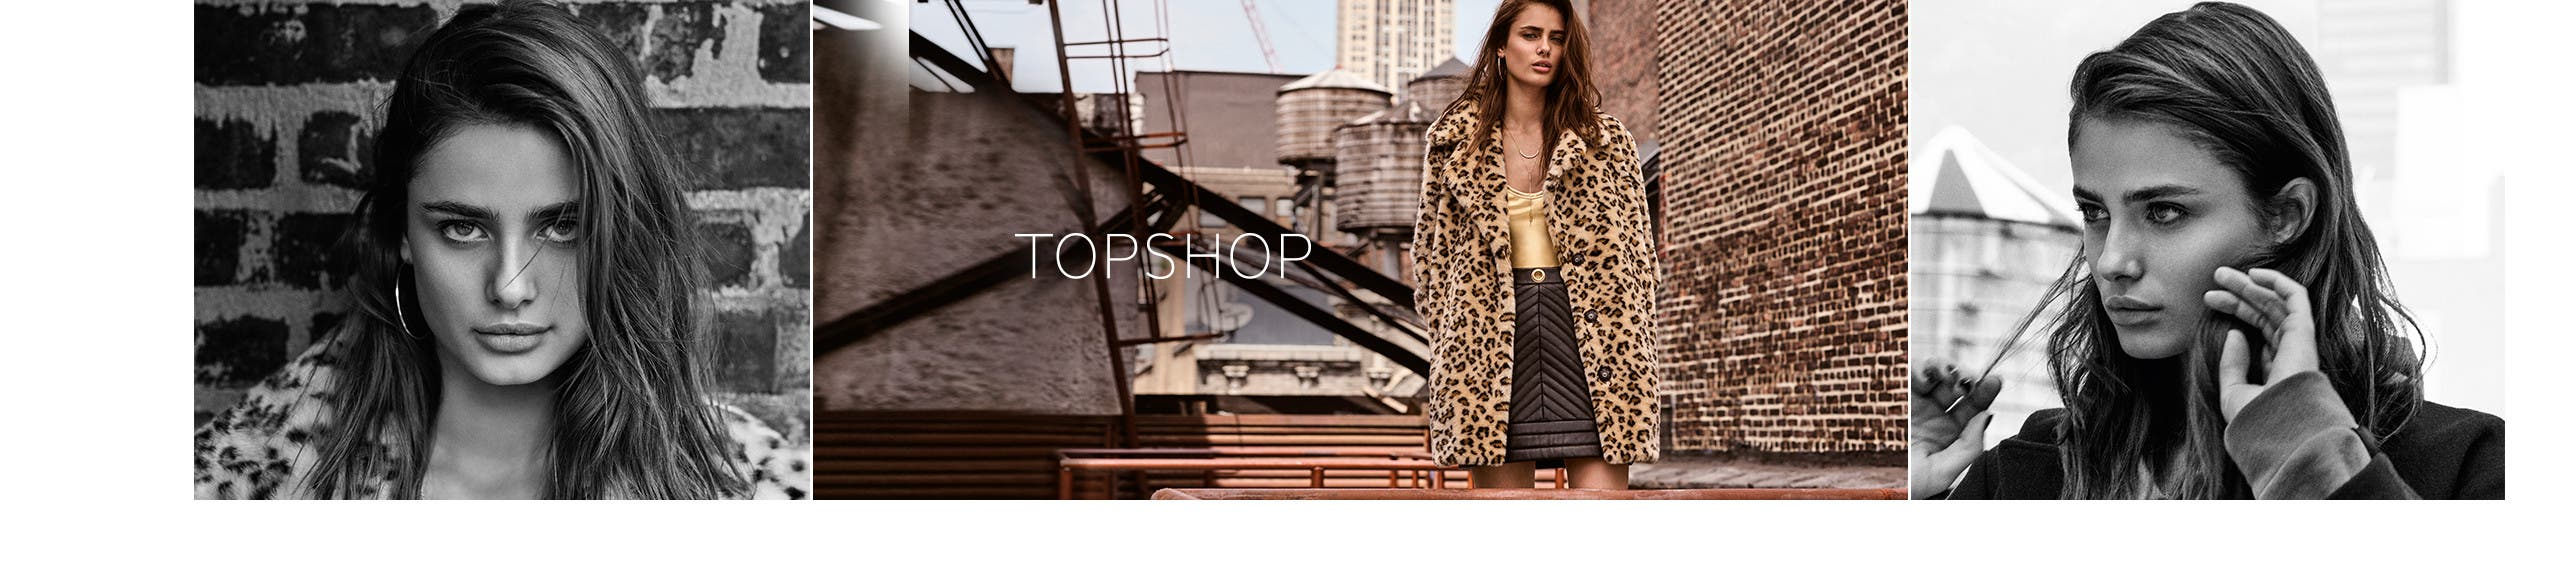 Topshop clothing, shoes and accessories for women.